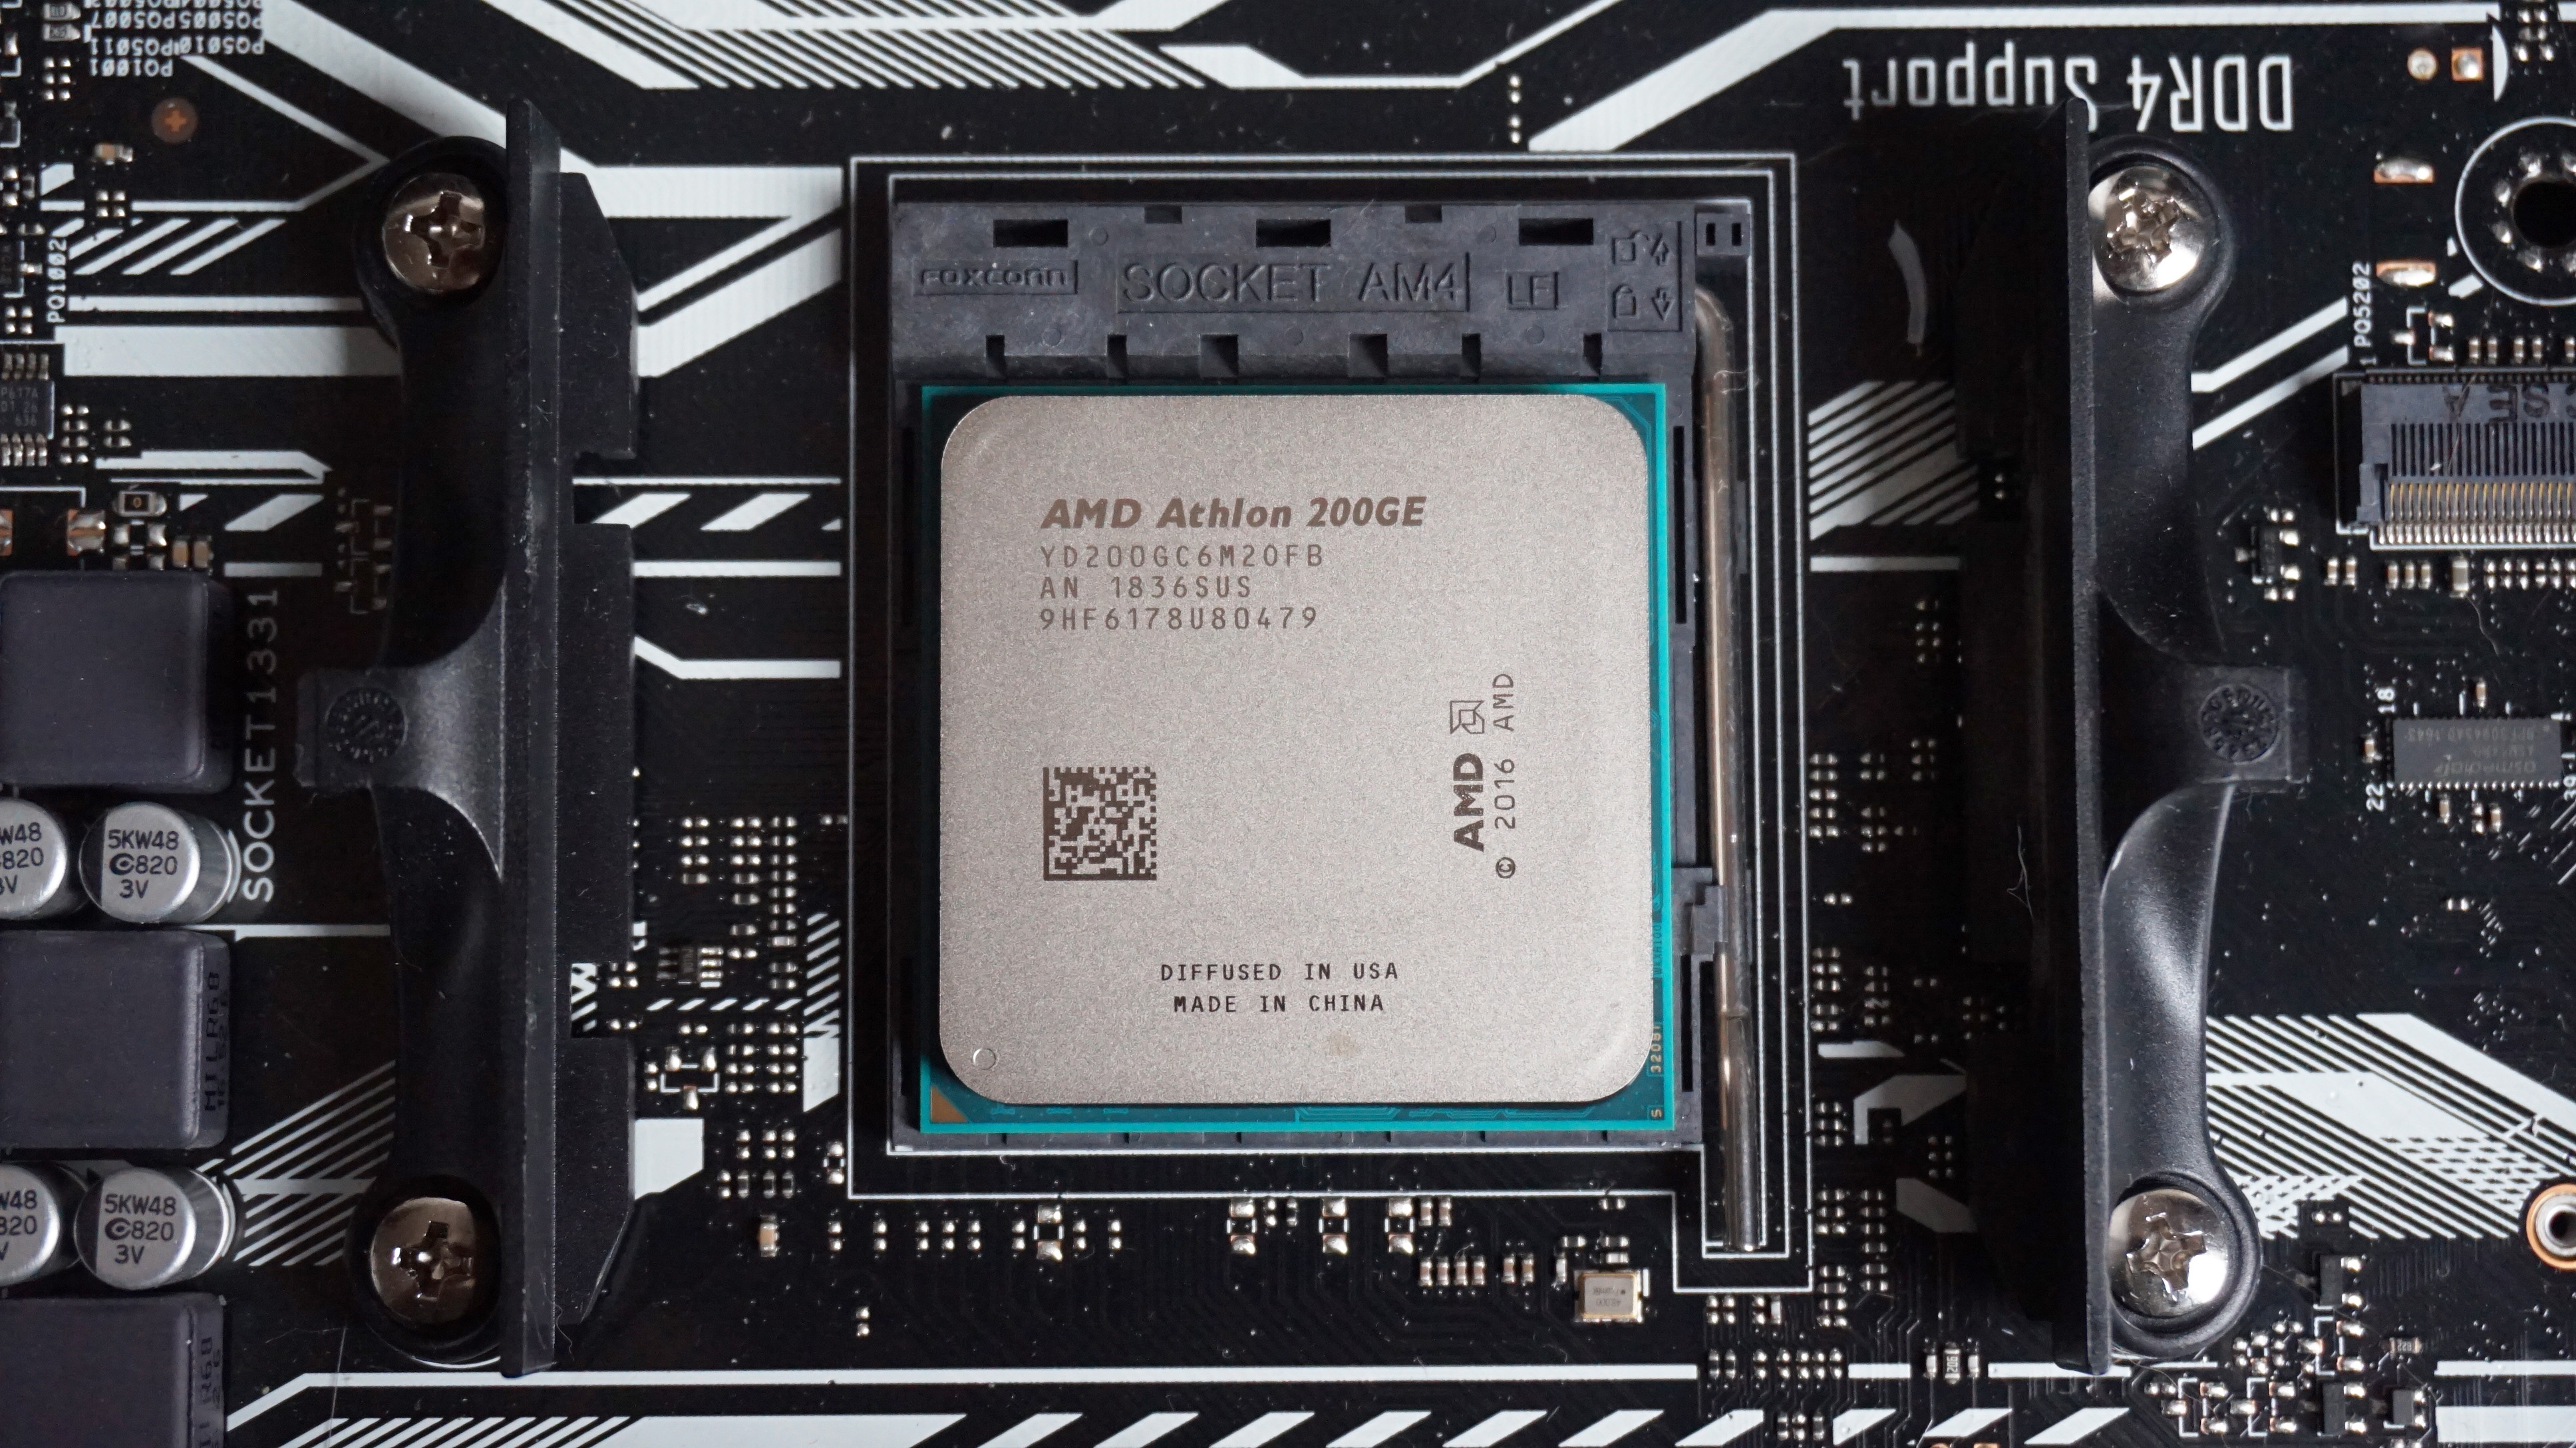 AMD Athlon 200GE review: The perfect gaming CPU for Fortnite